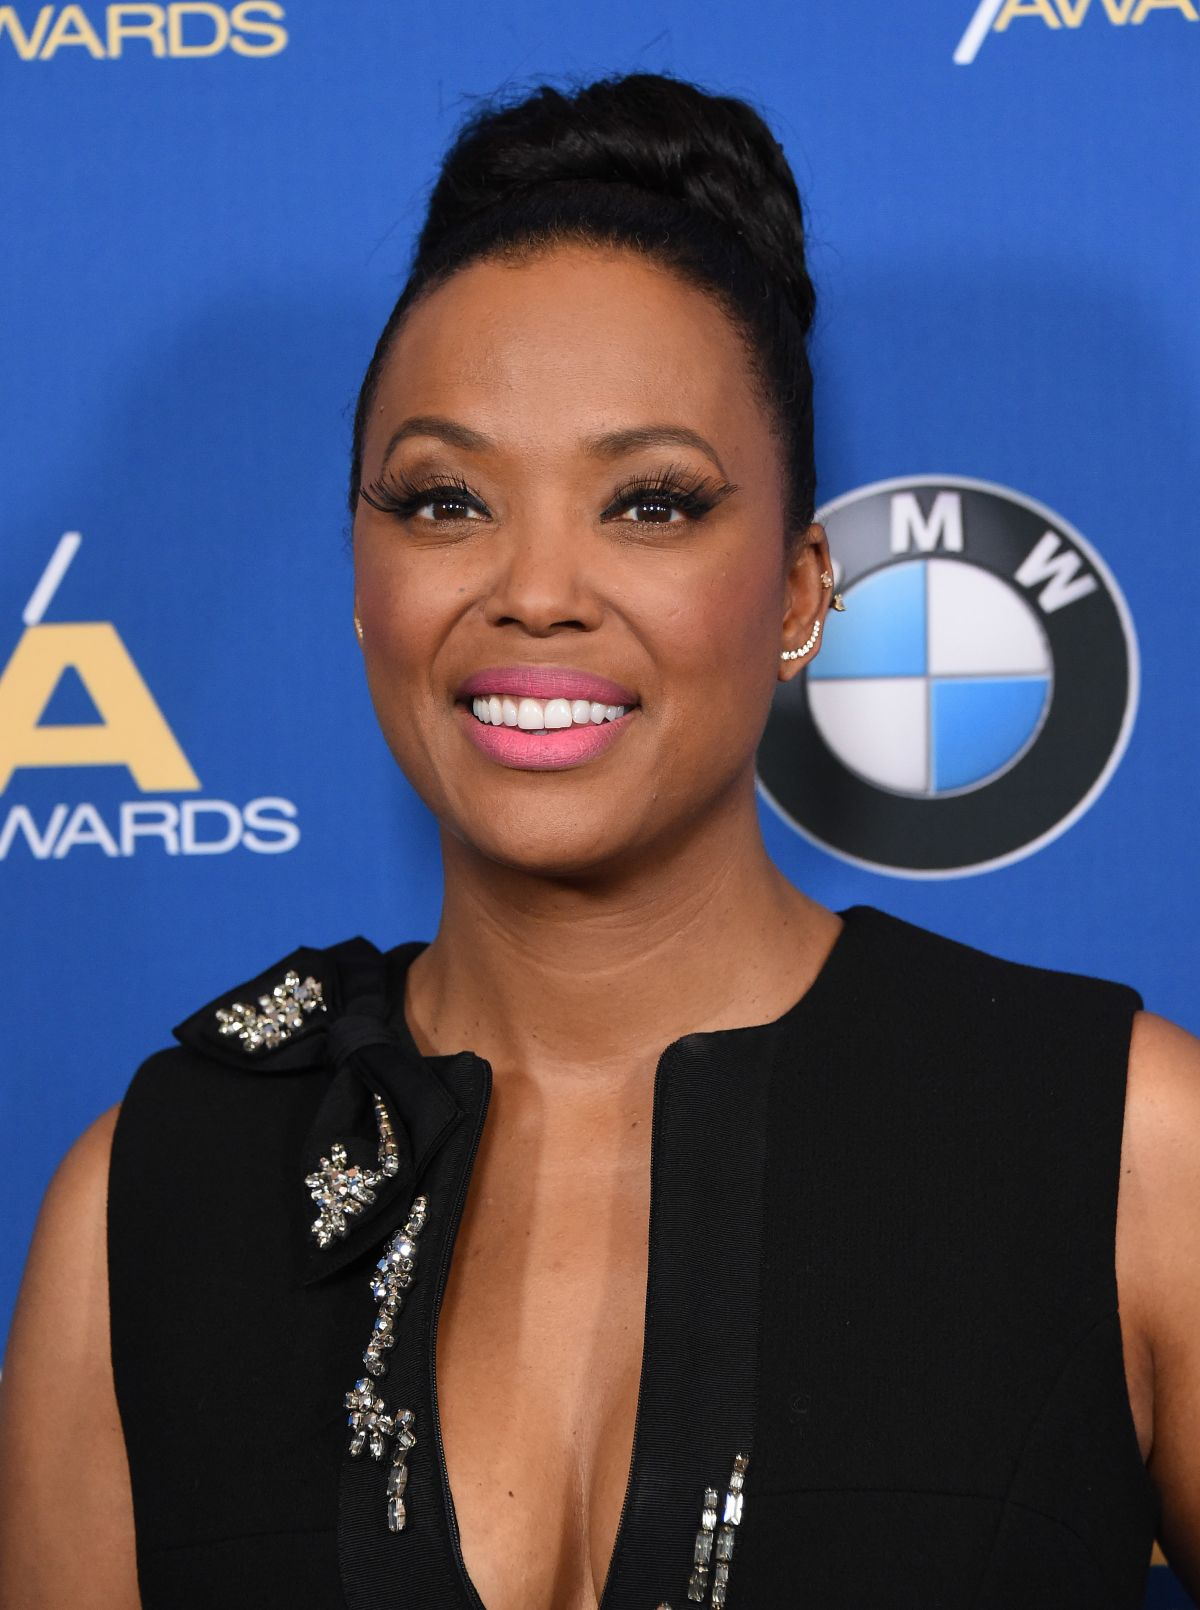 aisha-tyler-at-69th-annual-directors-guild-of-america-awards-in-beverly-hills-02-04-2017_10.jpg